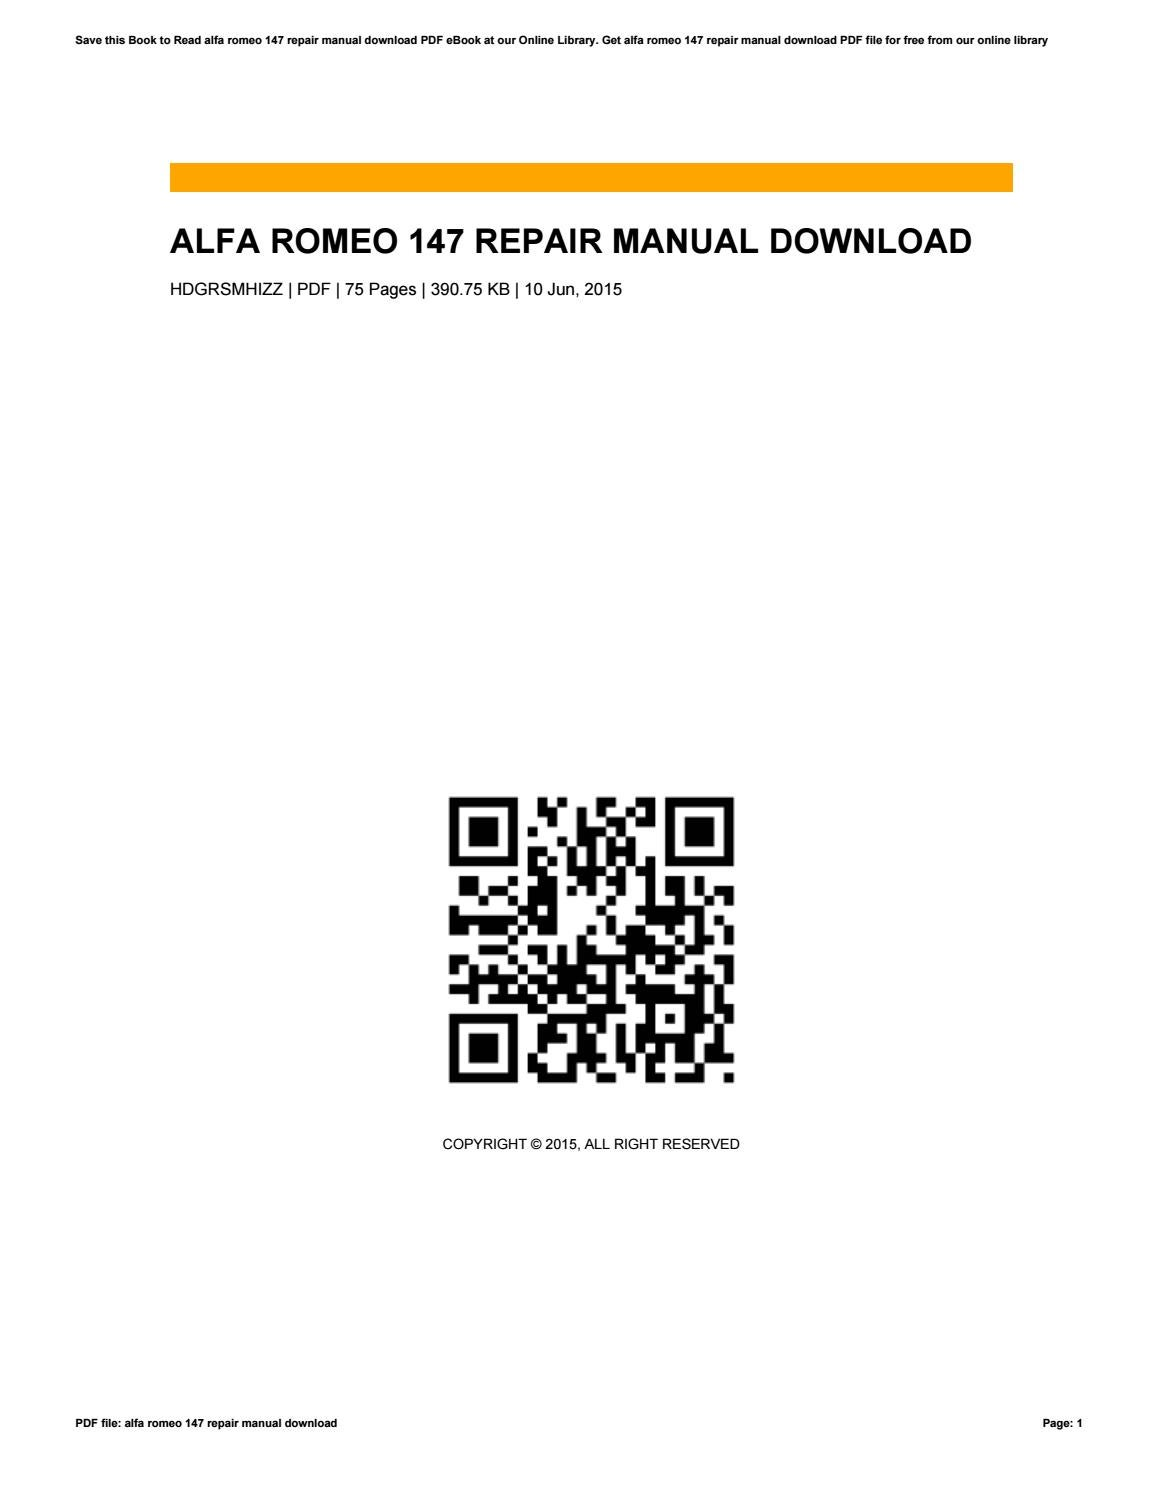 Alfa romeo 147 repair manual download by kathysanchez3302 issuu sciox Images